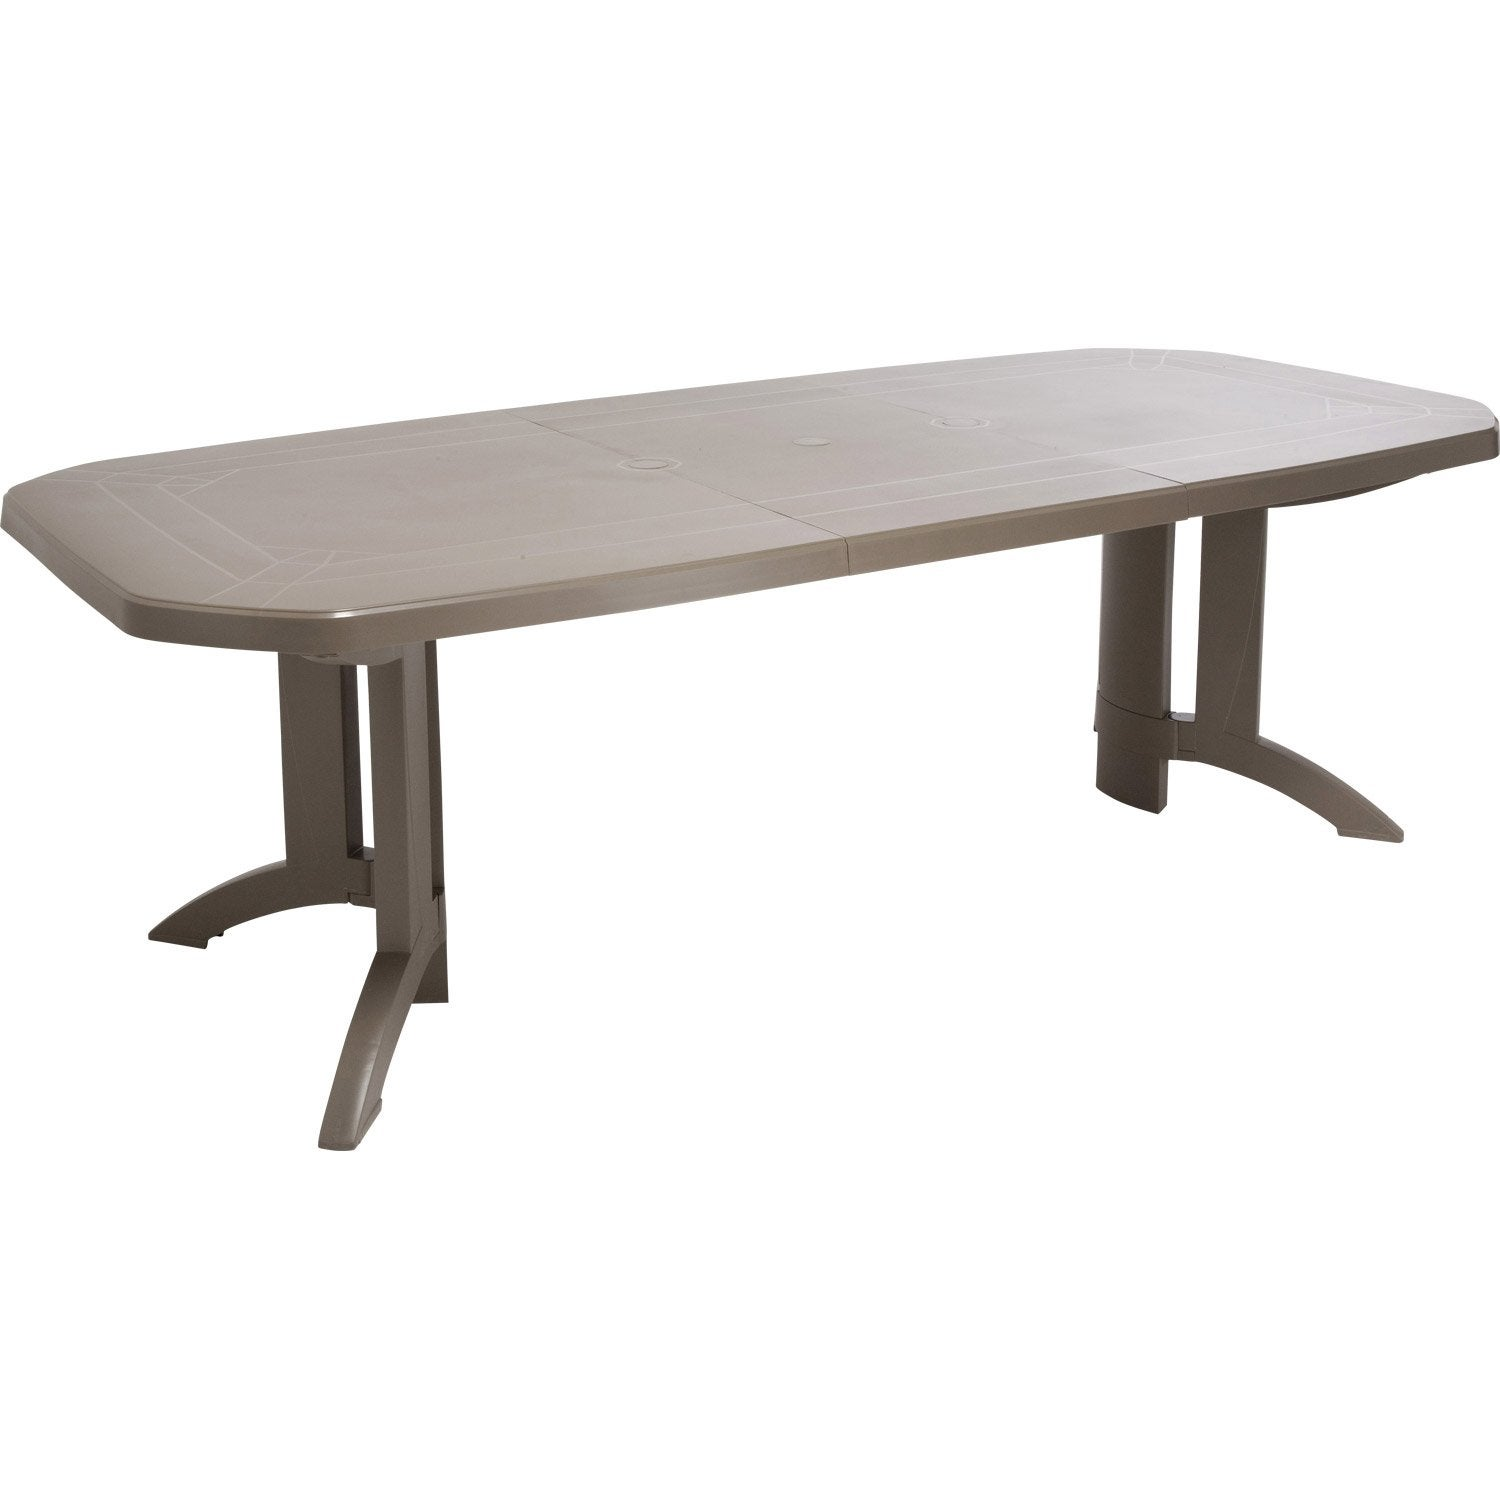 Table de jardin grosfillex v ga rectangulaire taupe 10 - Table et chaise de jardin grosfillex ...